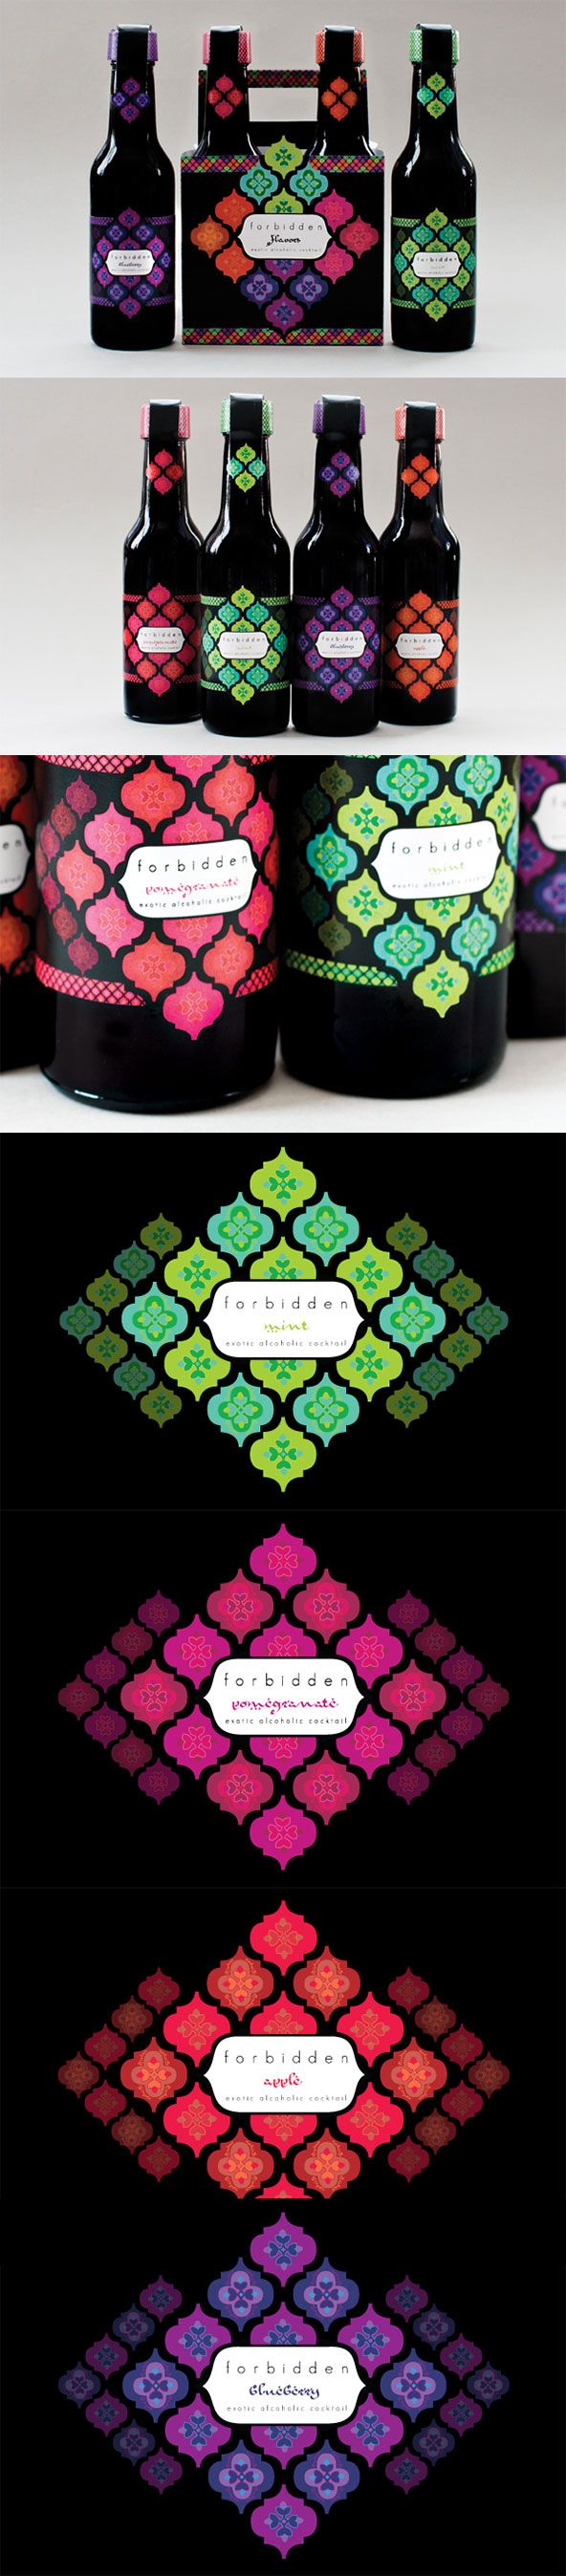 Colorful Forbidden alcoholic cocktails #packaging PD